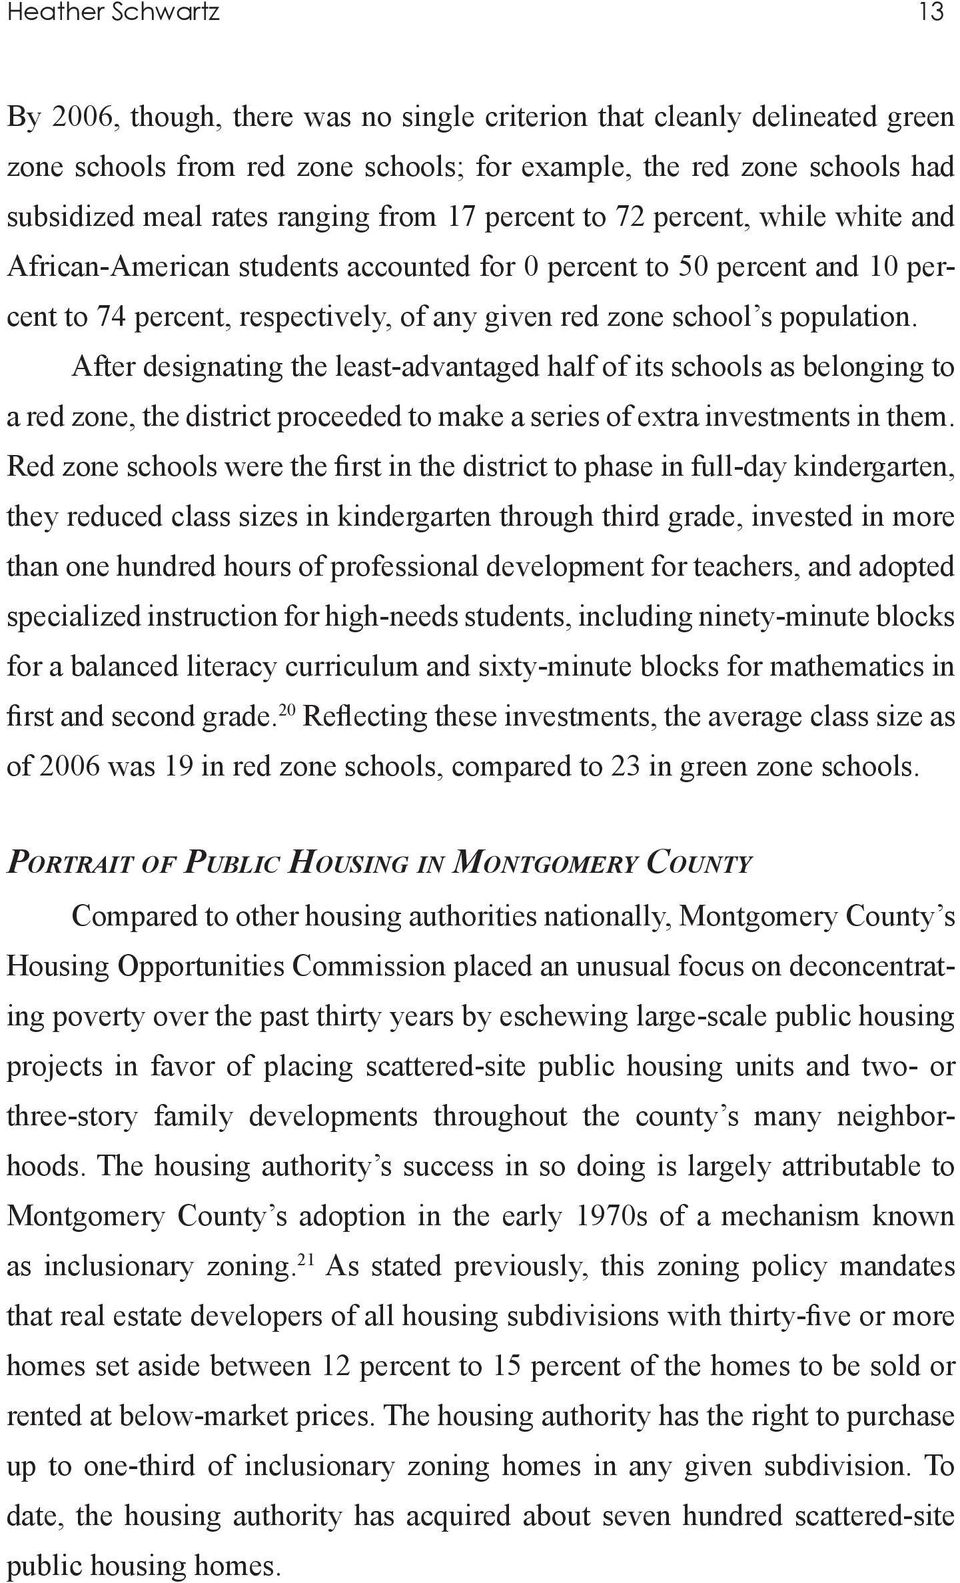 population. After designating the least-advantaged half of its schools as belonging to a red zone, the district proceeded to make a series of extra investments in them.